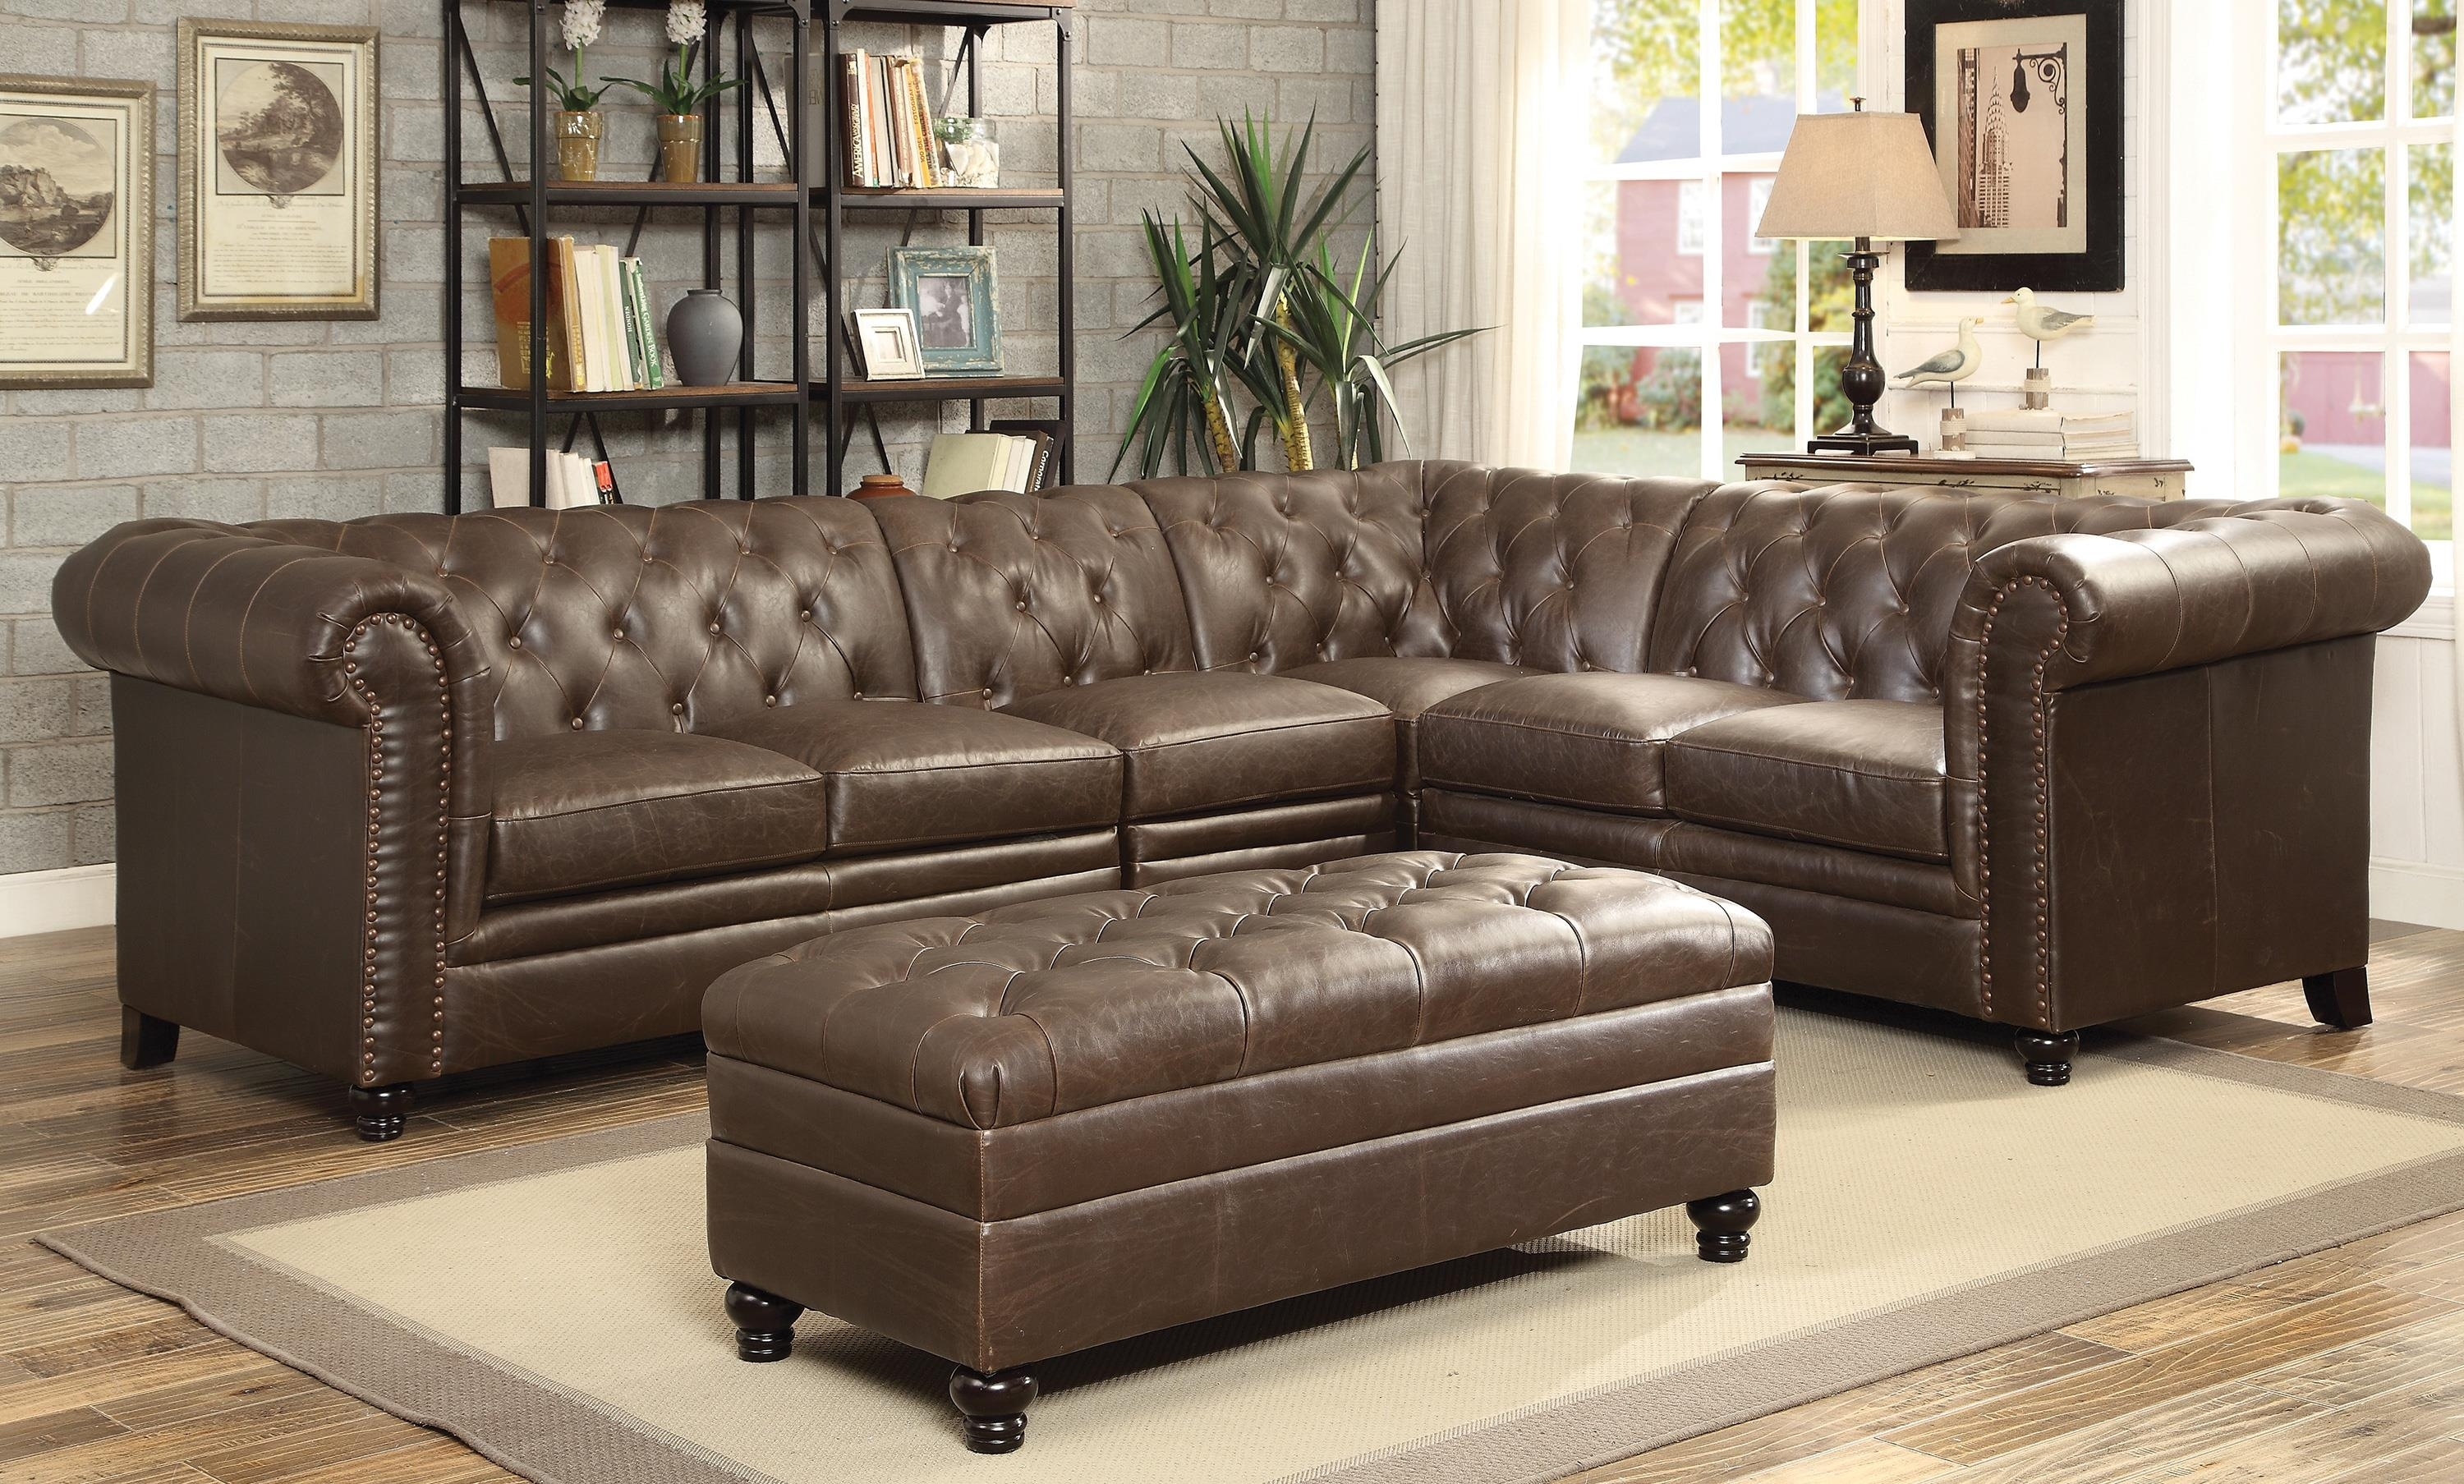 Tufted Sectional Sofa With Chaise – Visionexchange (View 3 of 10)